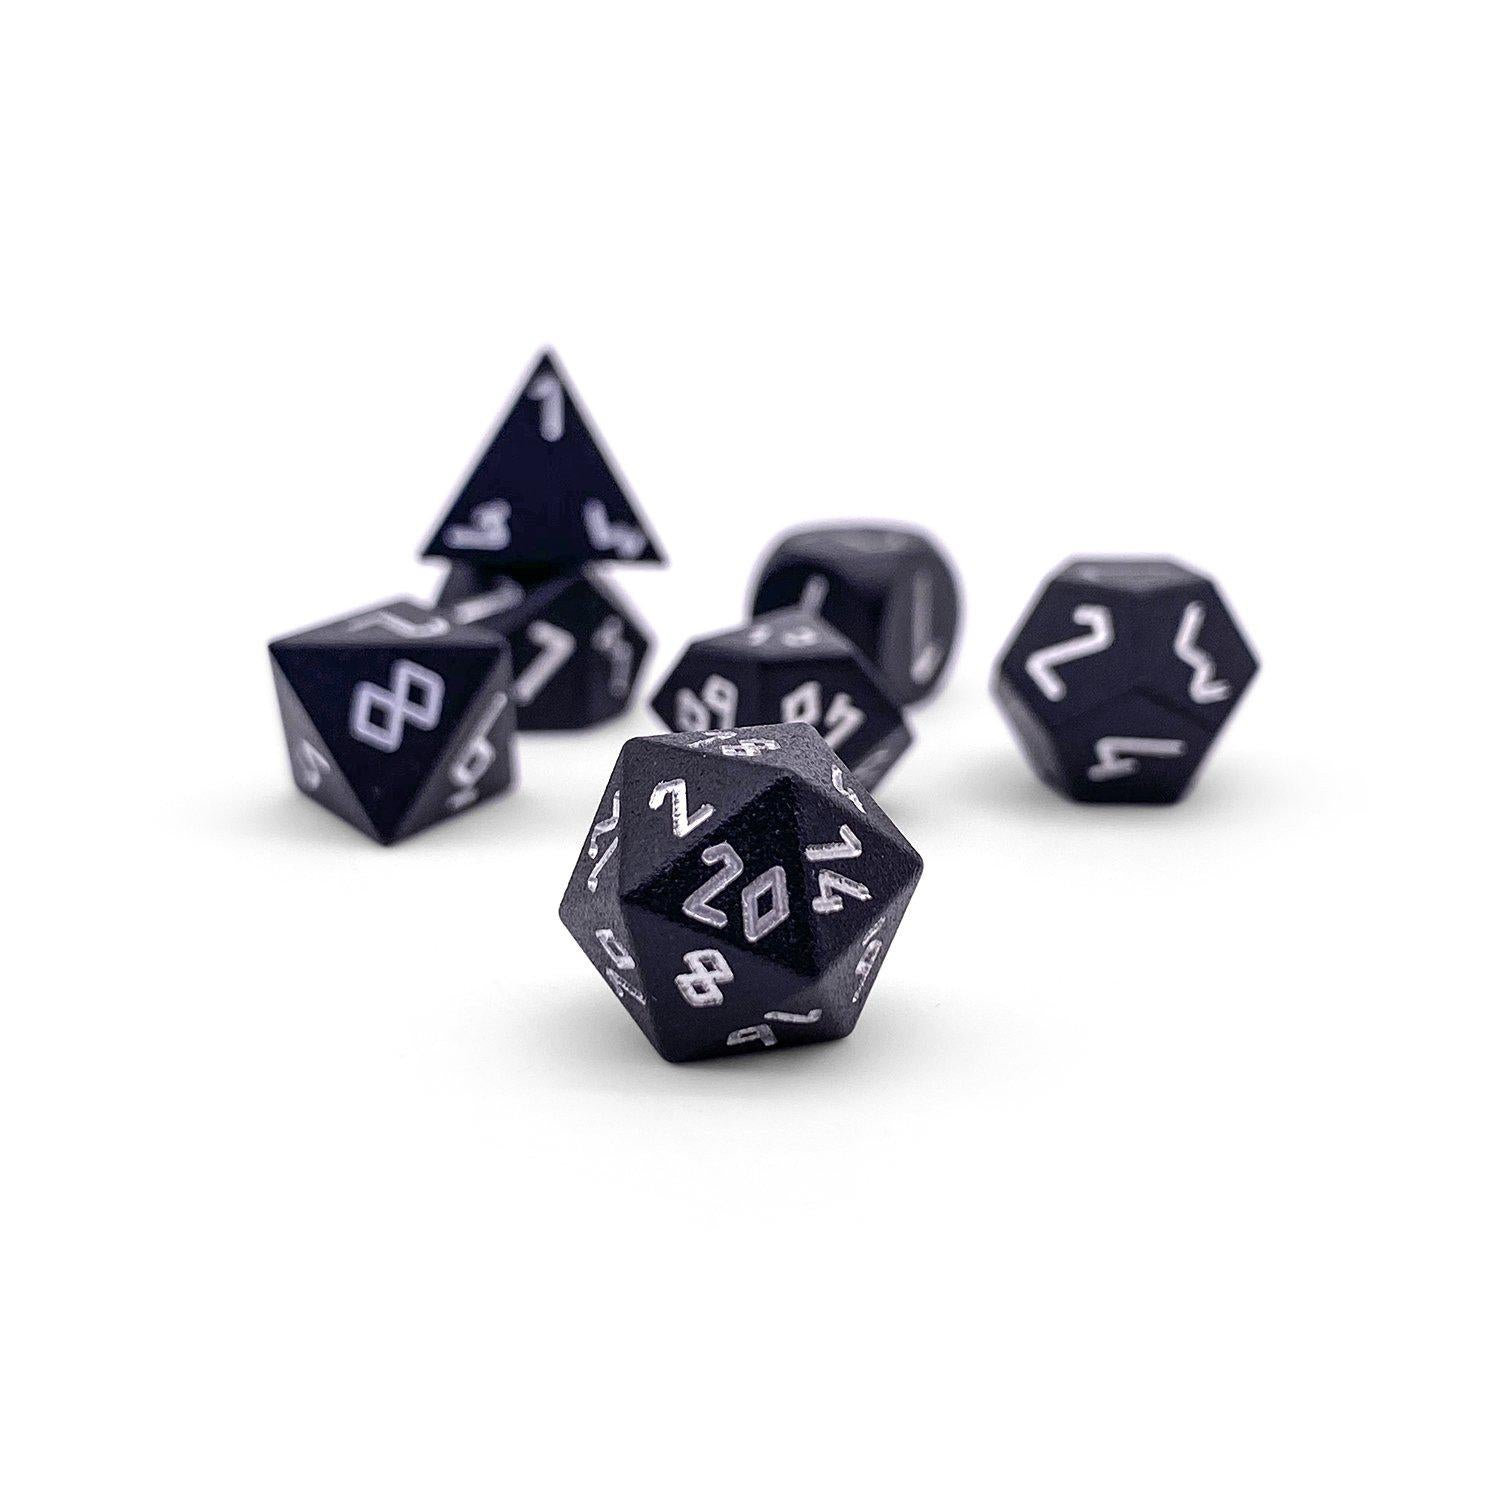 Night Black Pebble ™ Dice - 10mm 6063 Aircraft Grade Aluminum Mini